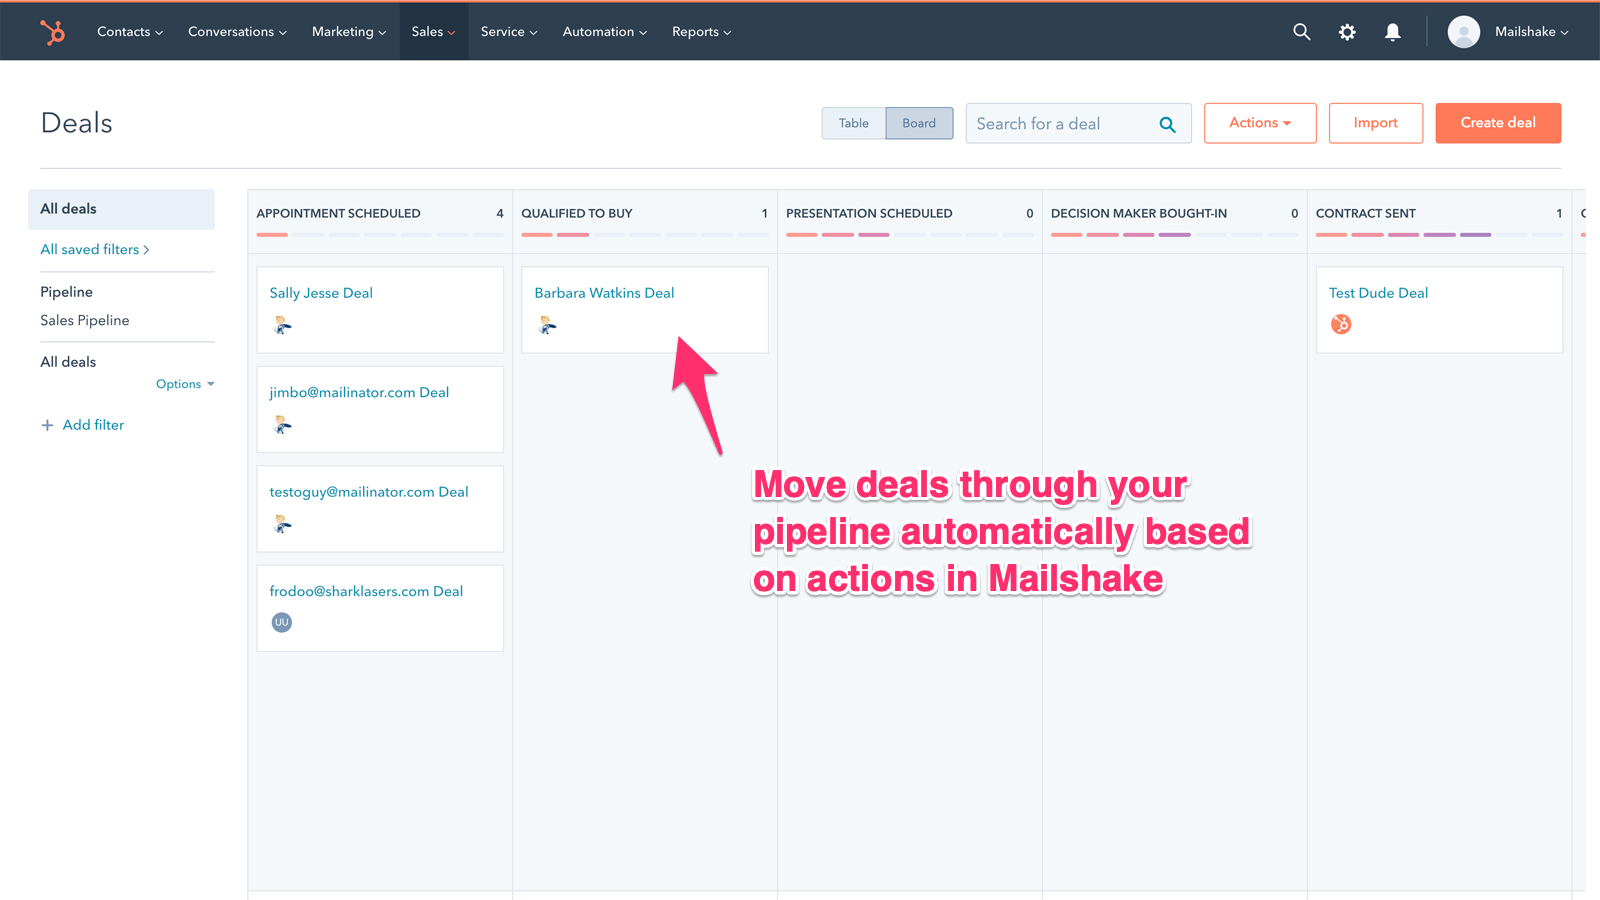 Move deals through your pipeline based on Mailshake actions